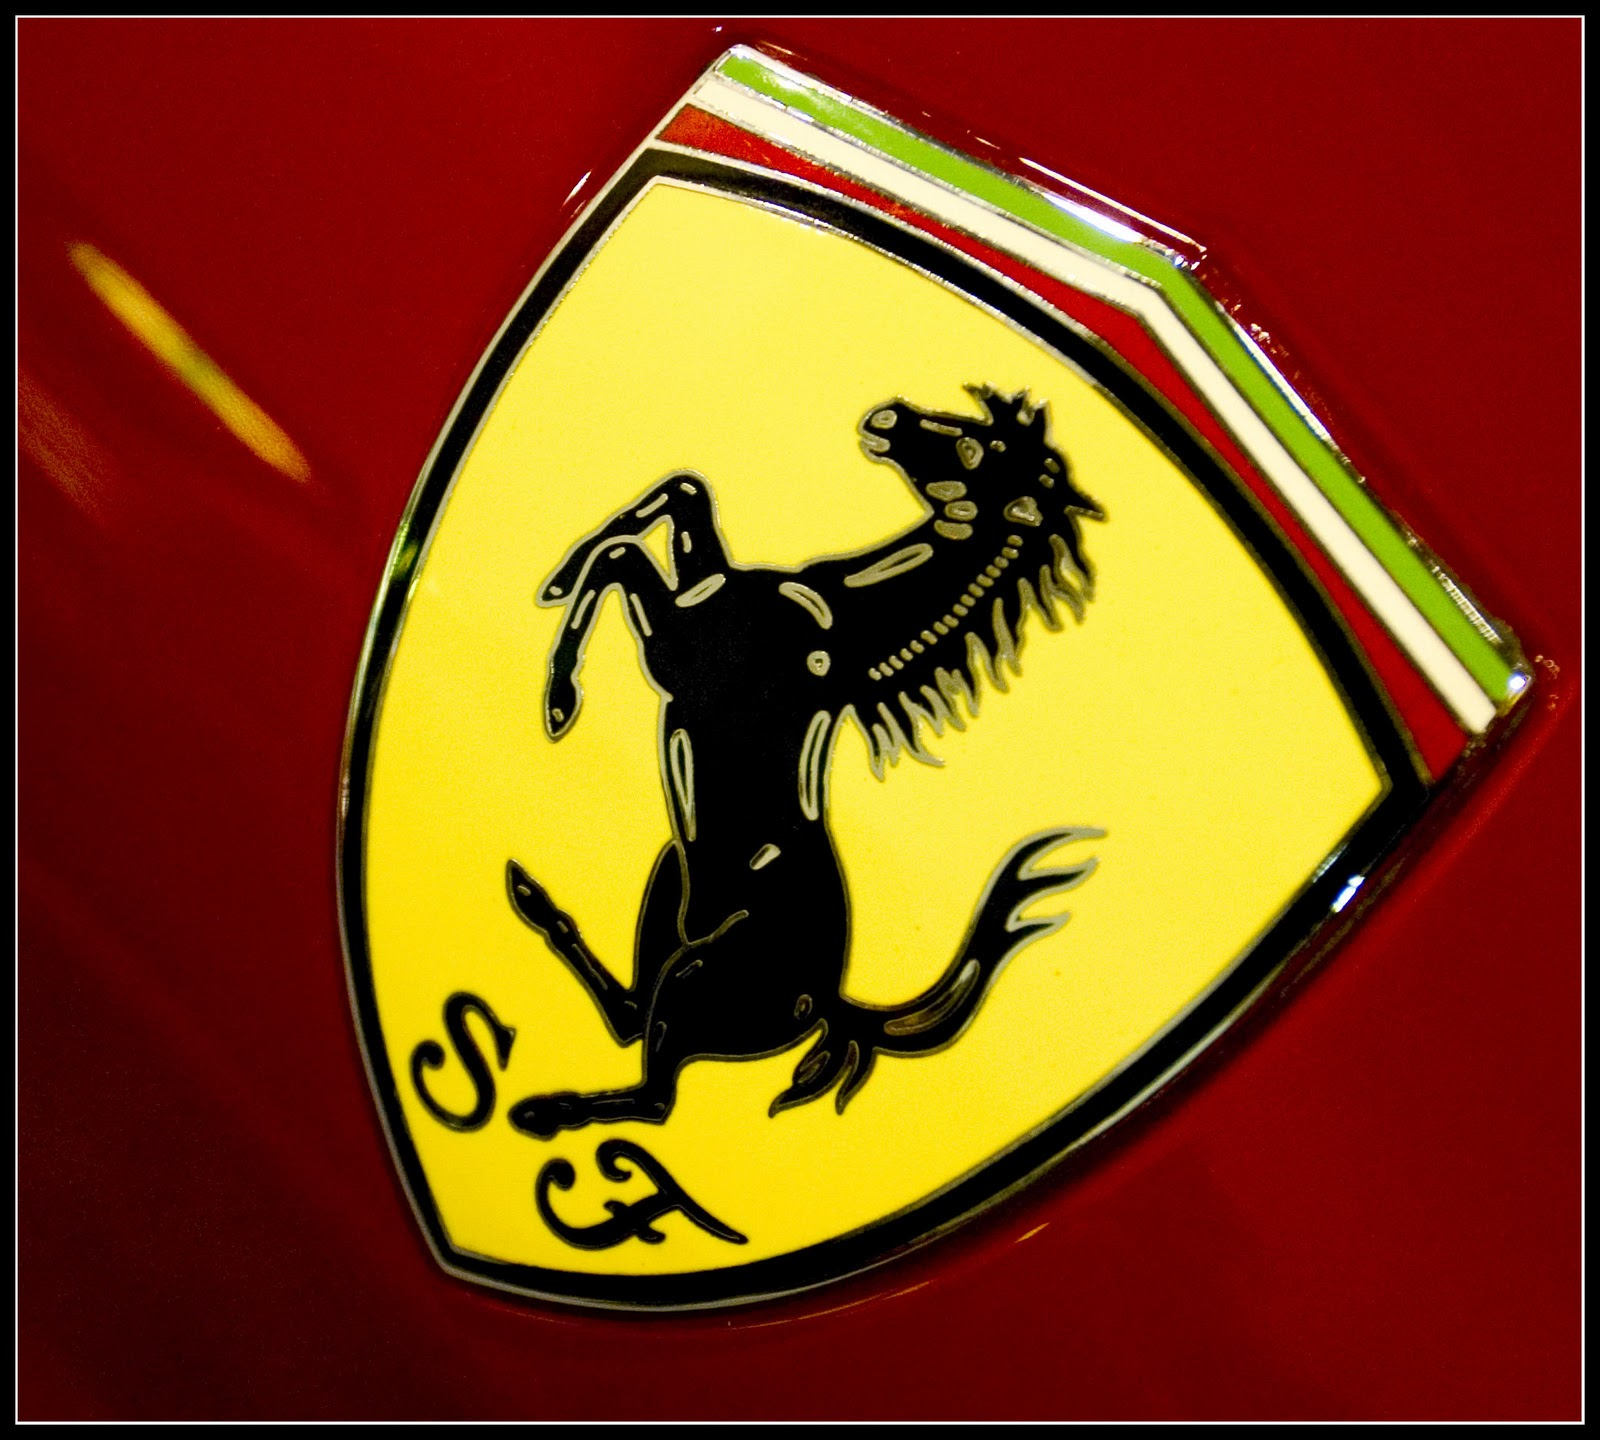 About Ferrari The Prancing Horse The Best Logo In The World